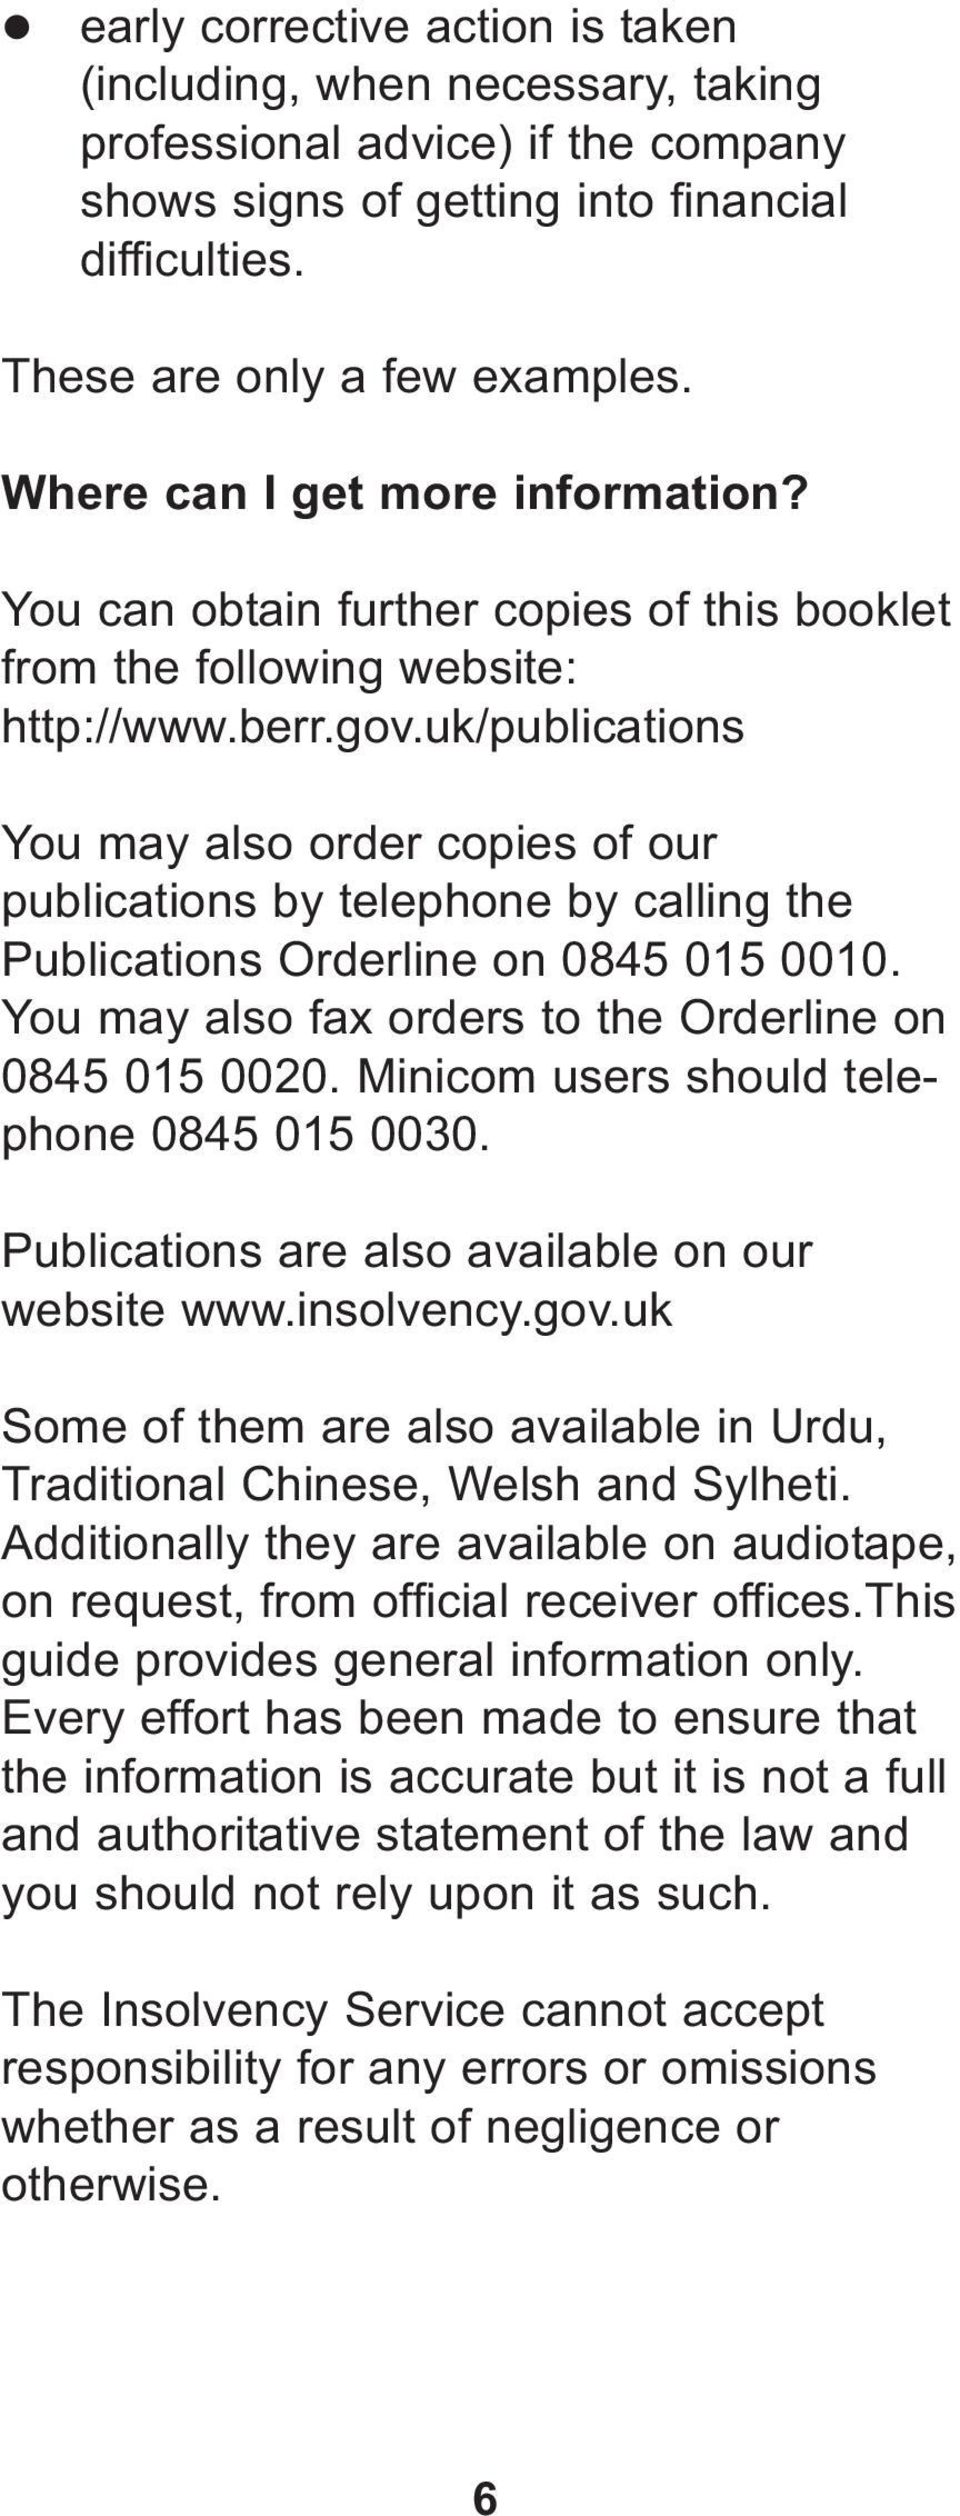 uk/publications You may also order copies of our publications by telephone by calling the Publications Orderline on 0845 015 0010. You may also fax orders to the Orderline on 0845 015 0020.